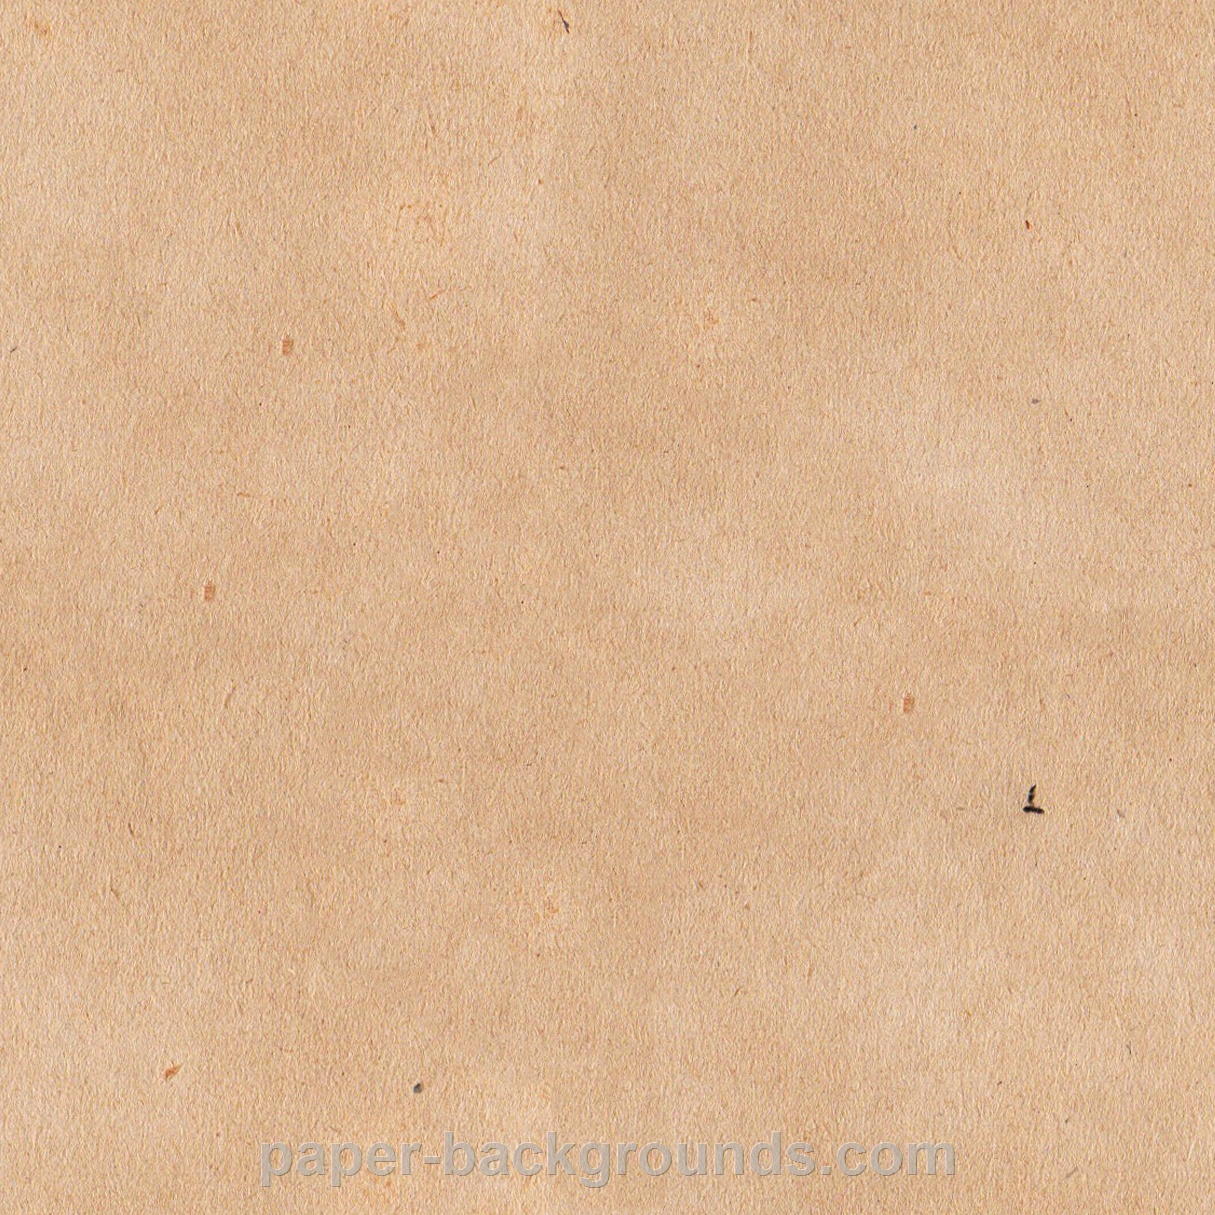 Paper Backgrounds | Paper Backgrounds | Royalty Free HD ...